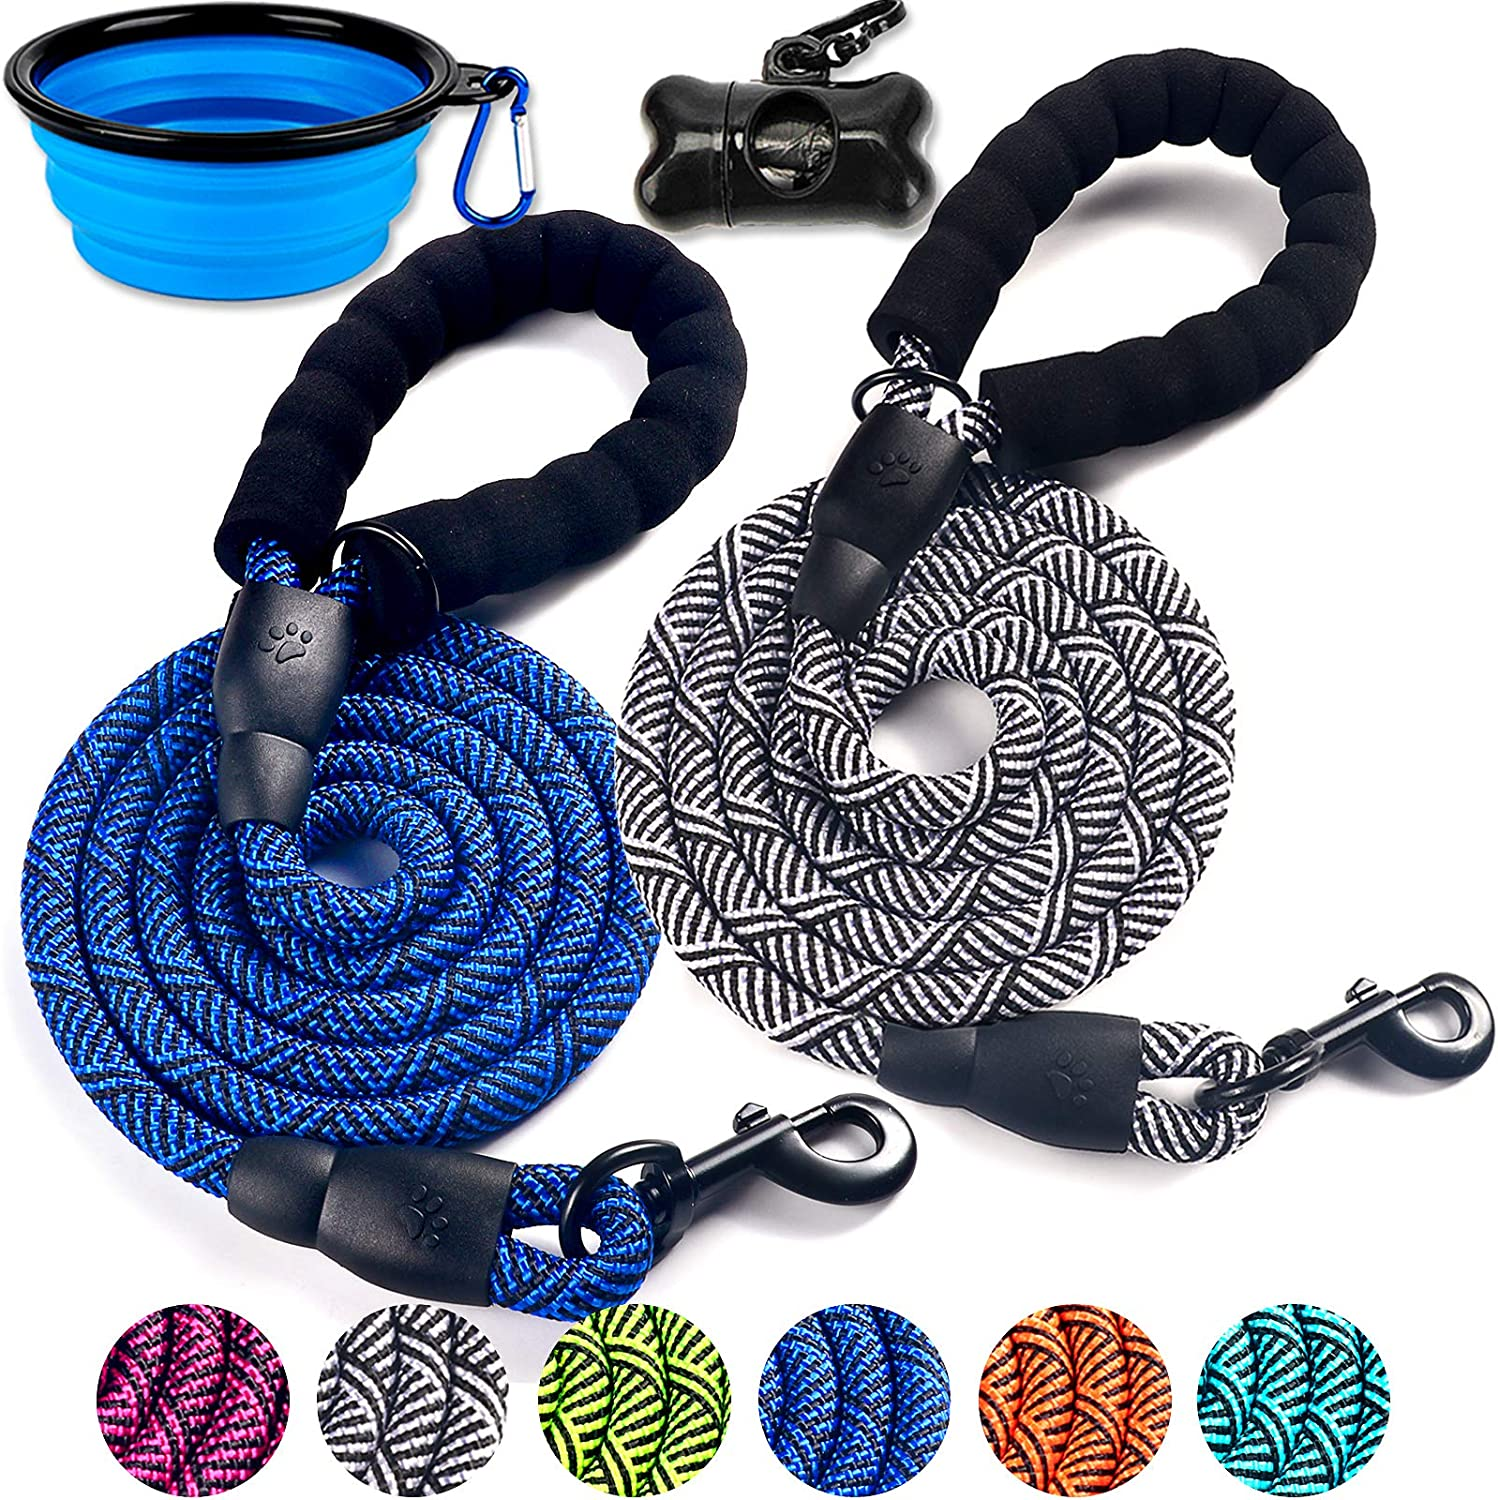 DOYOO 2 Pack Challenge the lowest price Dog Outlet sale feature Leash 6 FT Nylon Thick Rope - Comfortab Durable